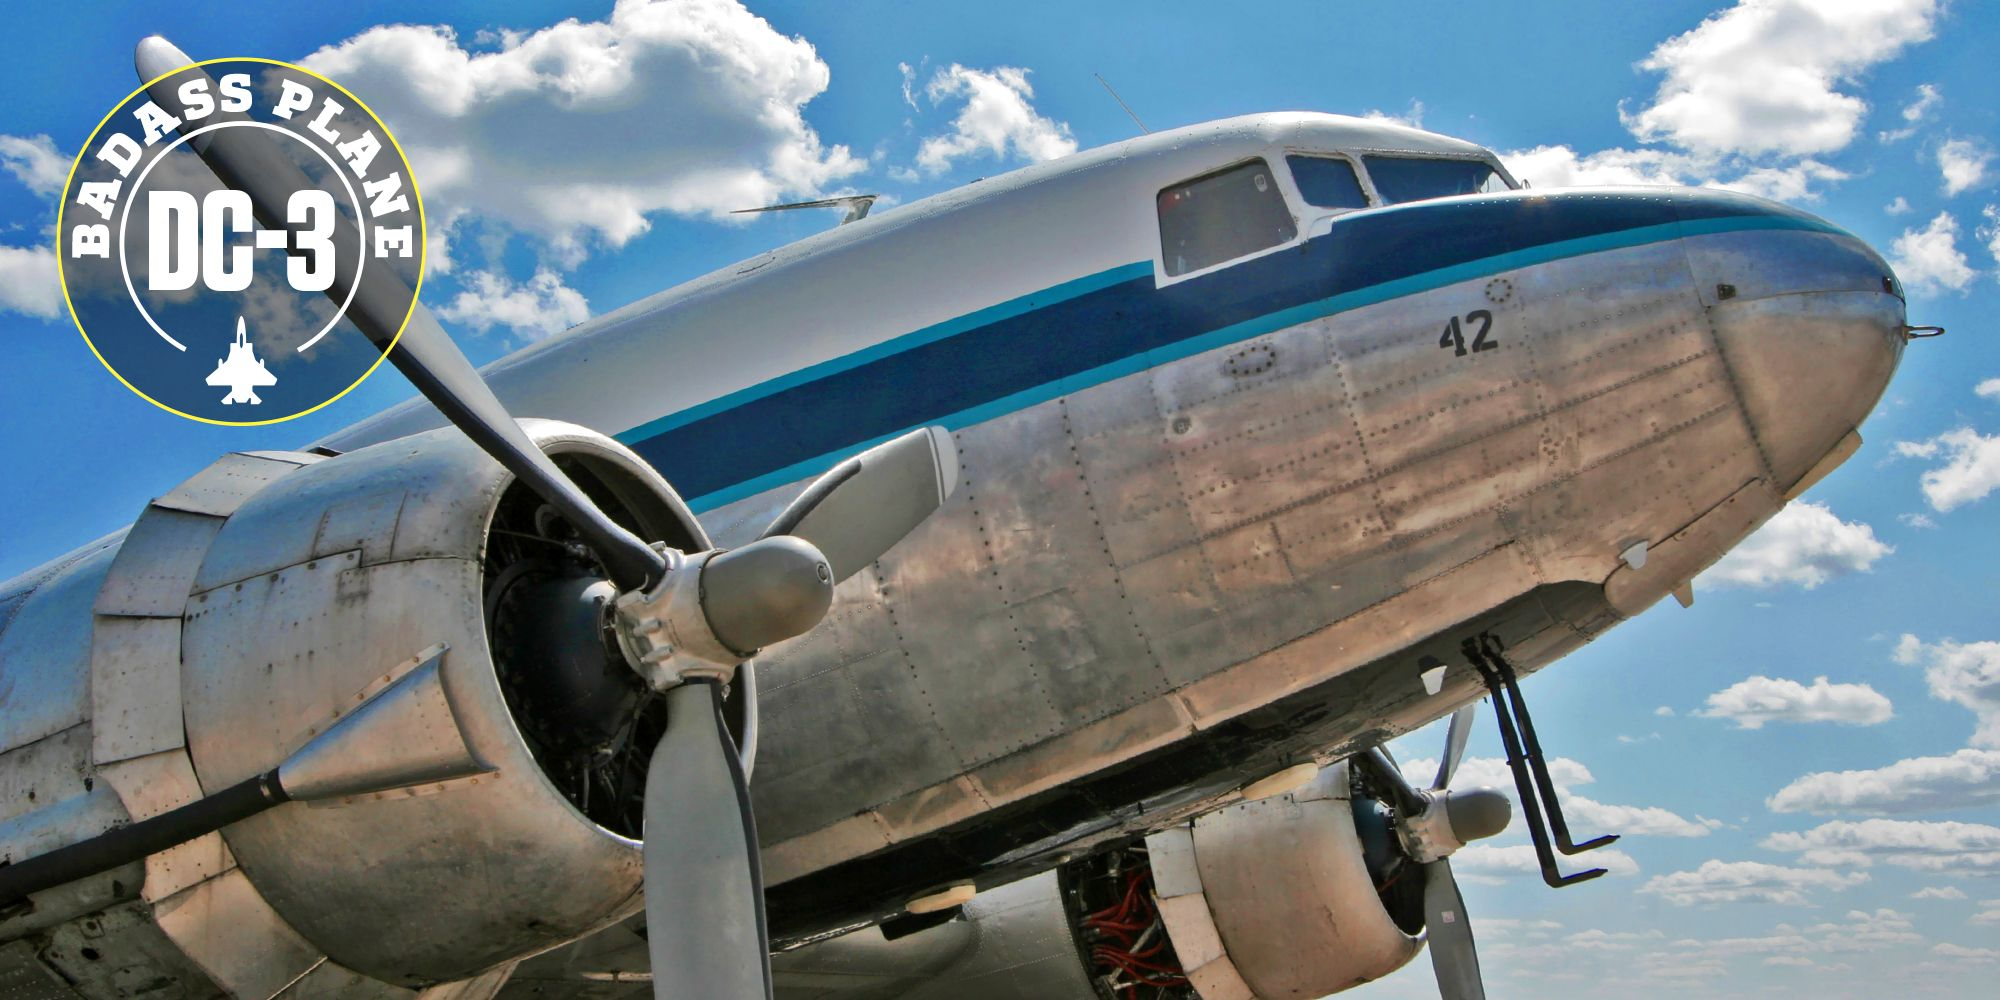 Why The Dc 3 Is Such A Badass Plane Aircraft Wiring Harness Mounting Hardware